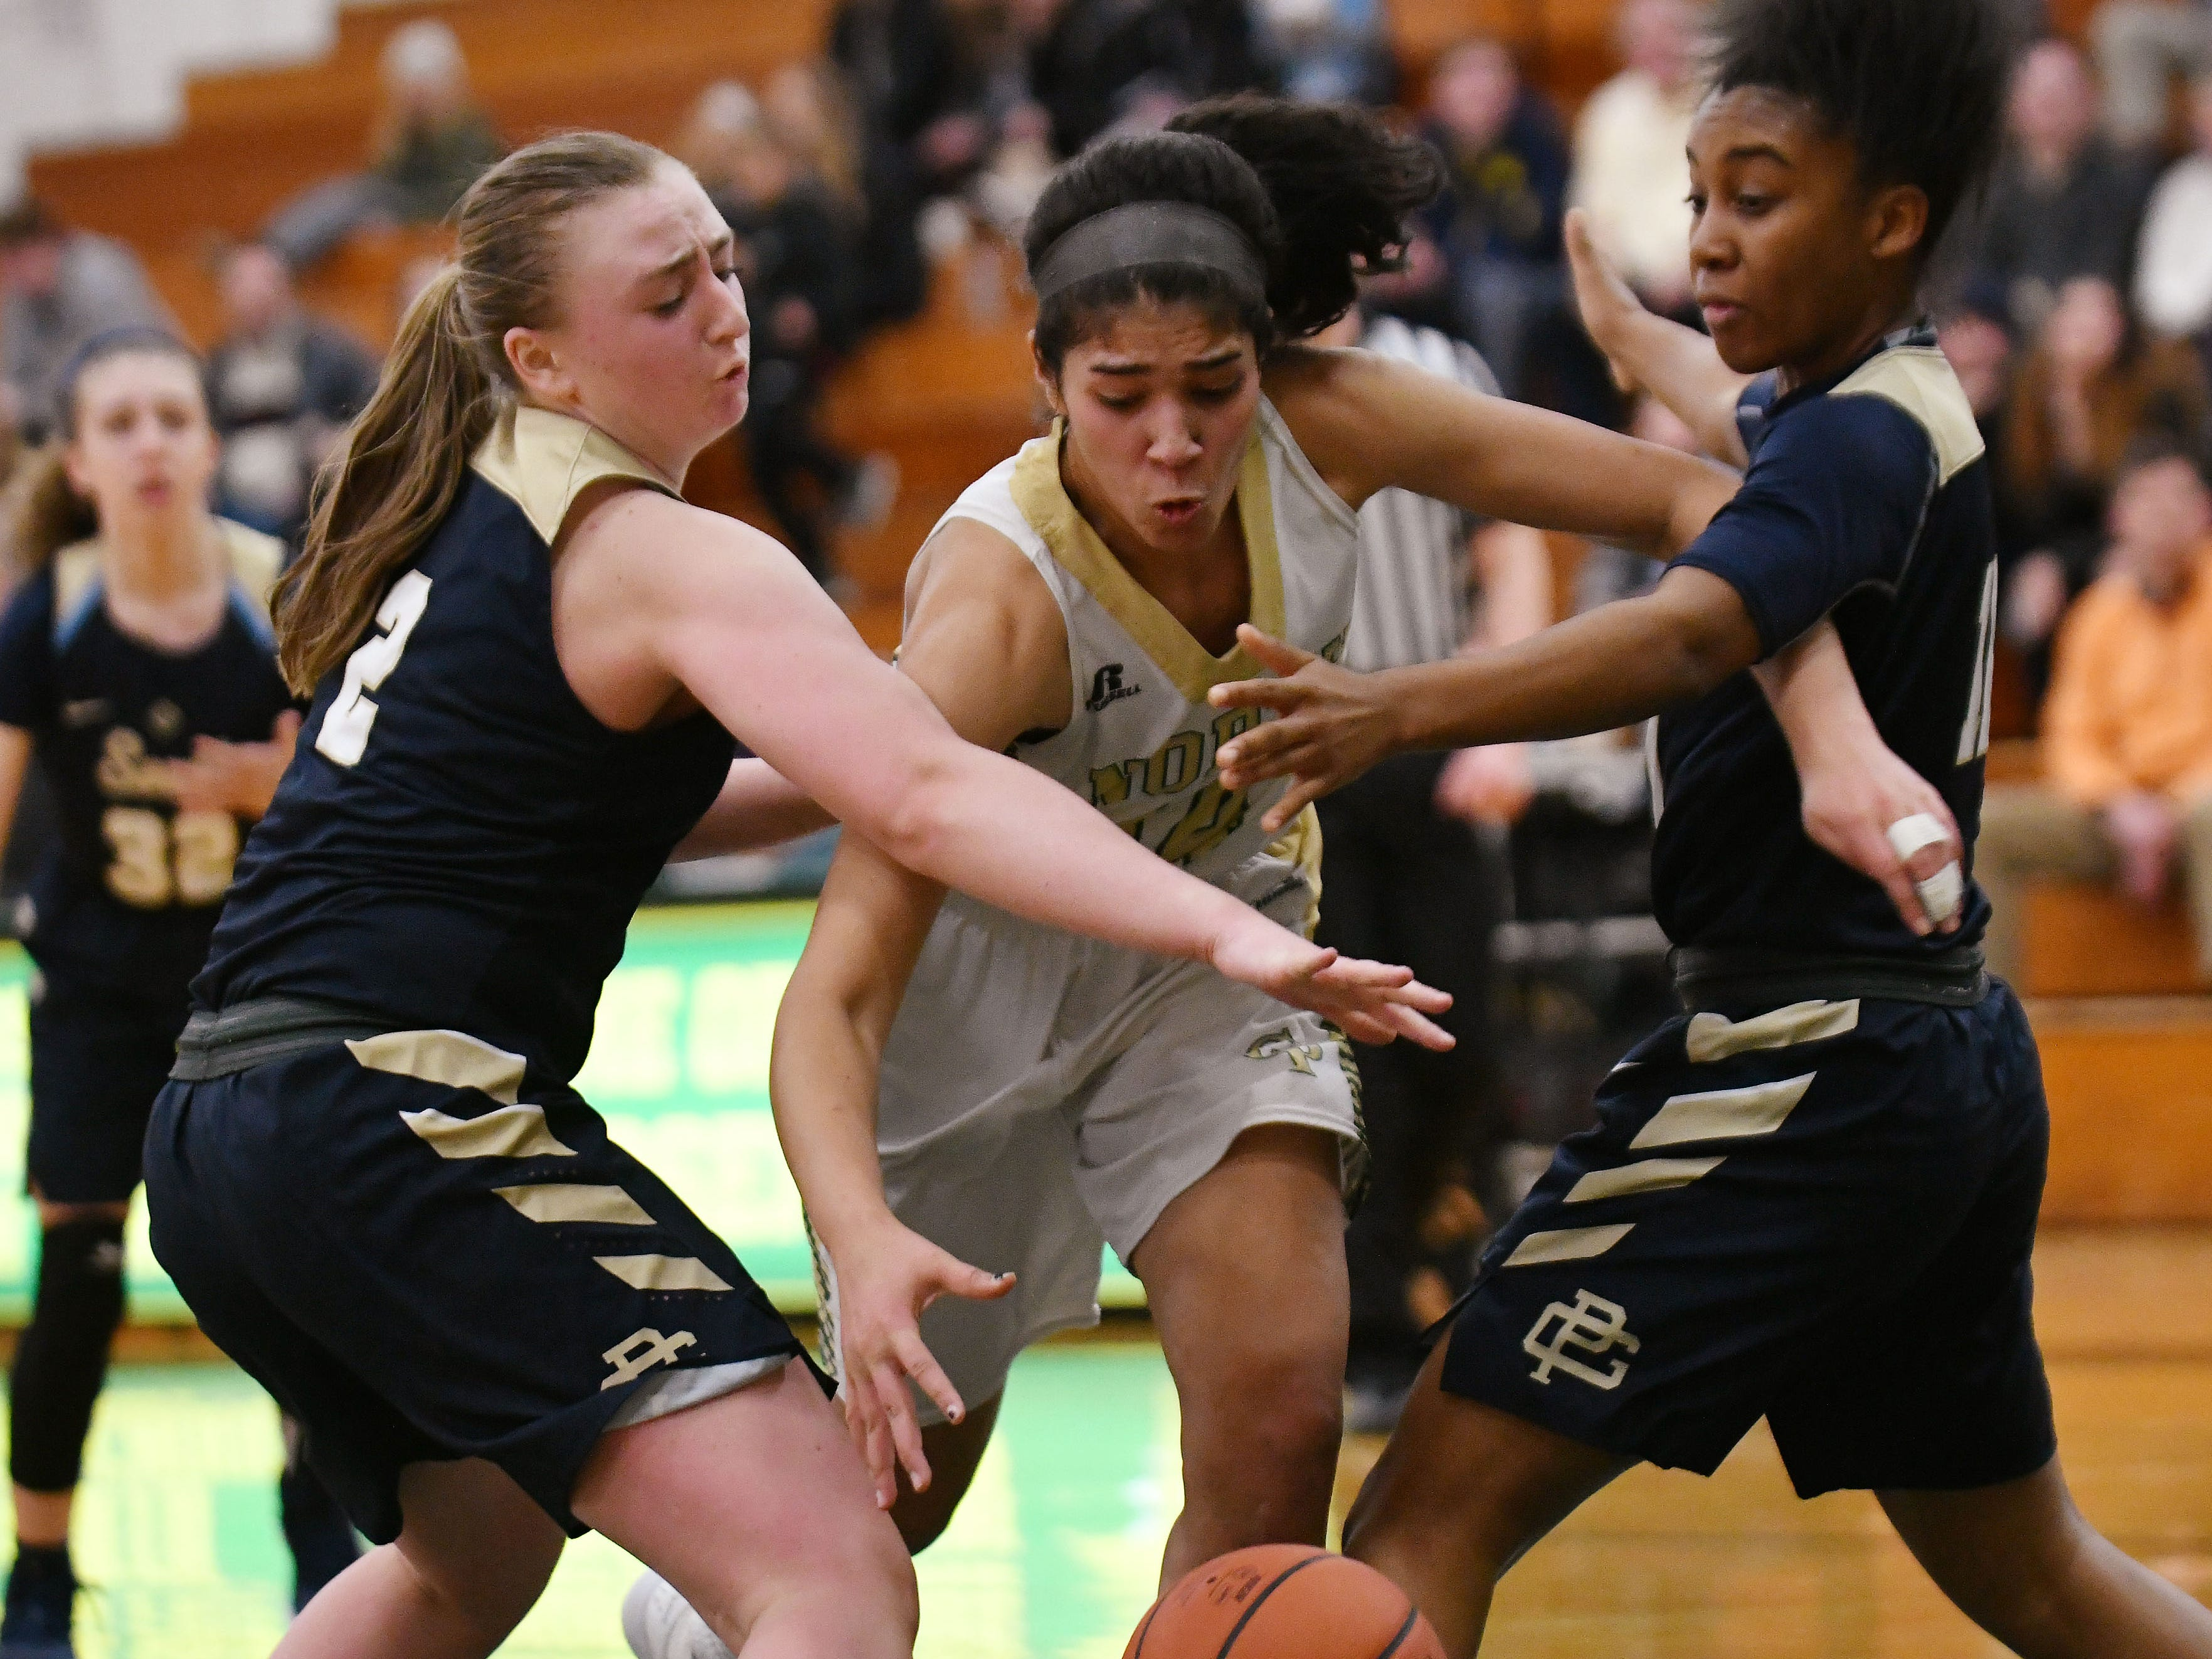 North's Christina Braker tries to split the South defense of Alexa Downey (left) and Sydni Hall during the second half.